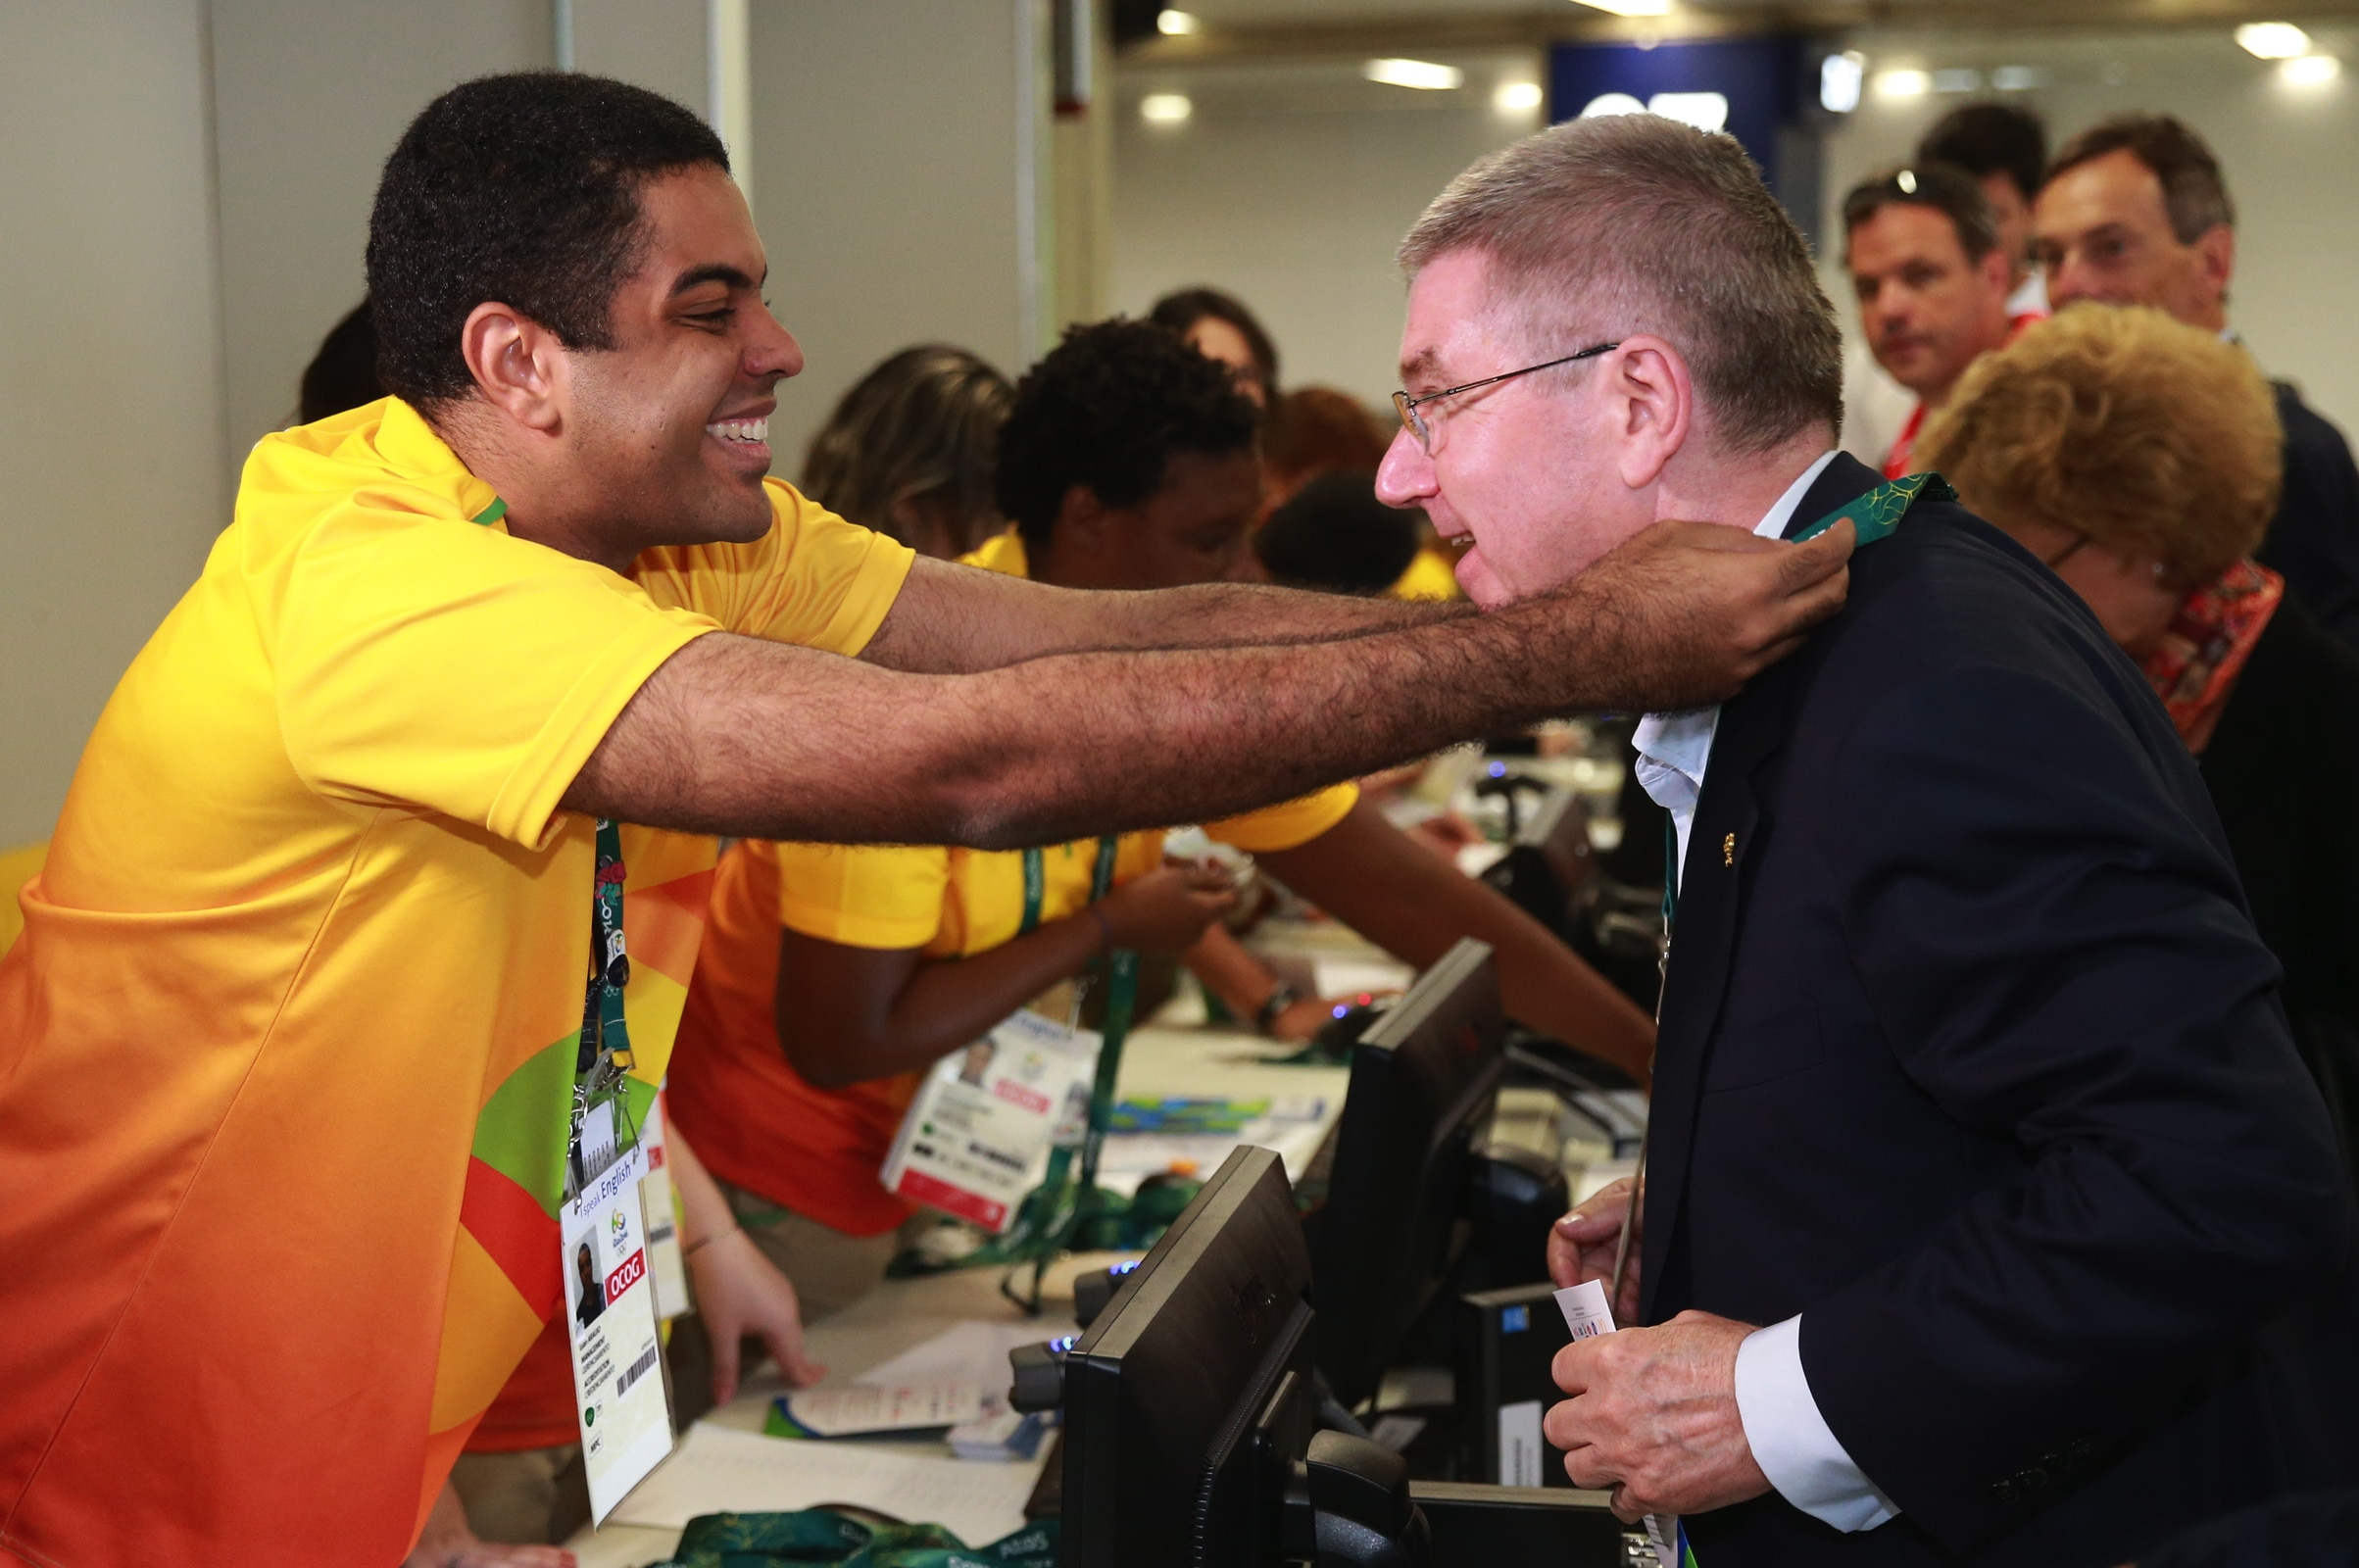 IOC President Thomas Bach drives at Rio De Janeiro airport to attend the Rio 2016 Olympic Games.